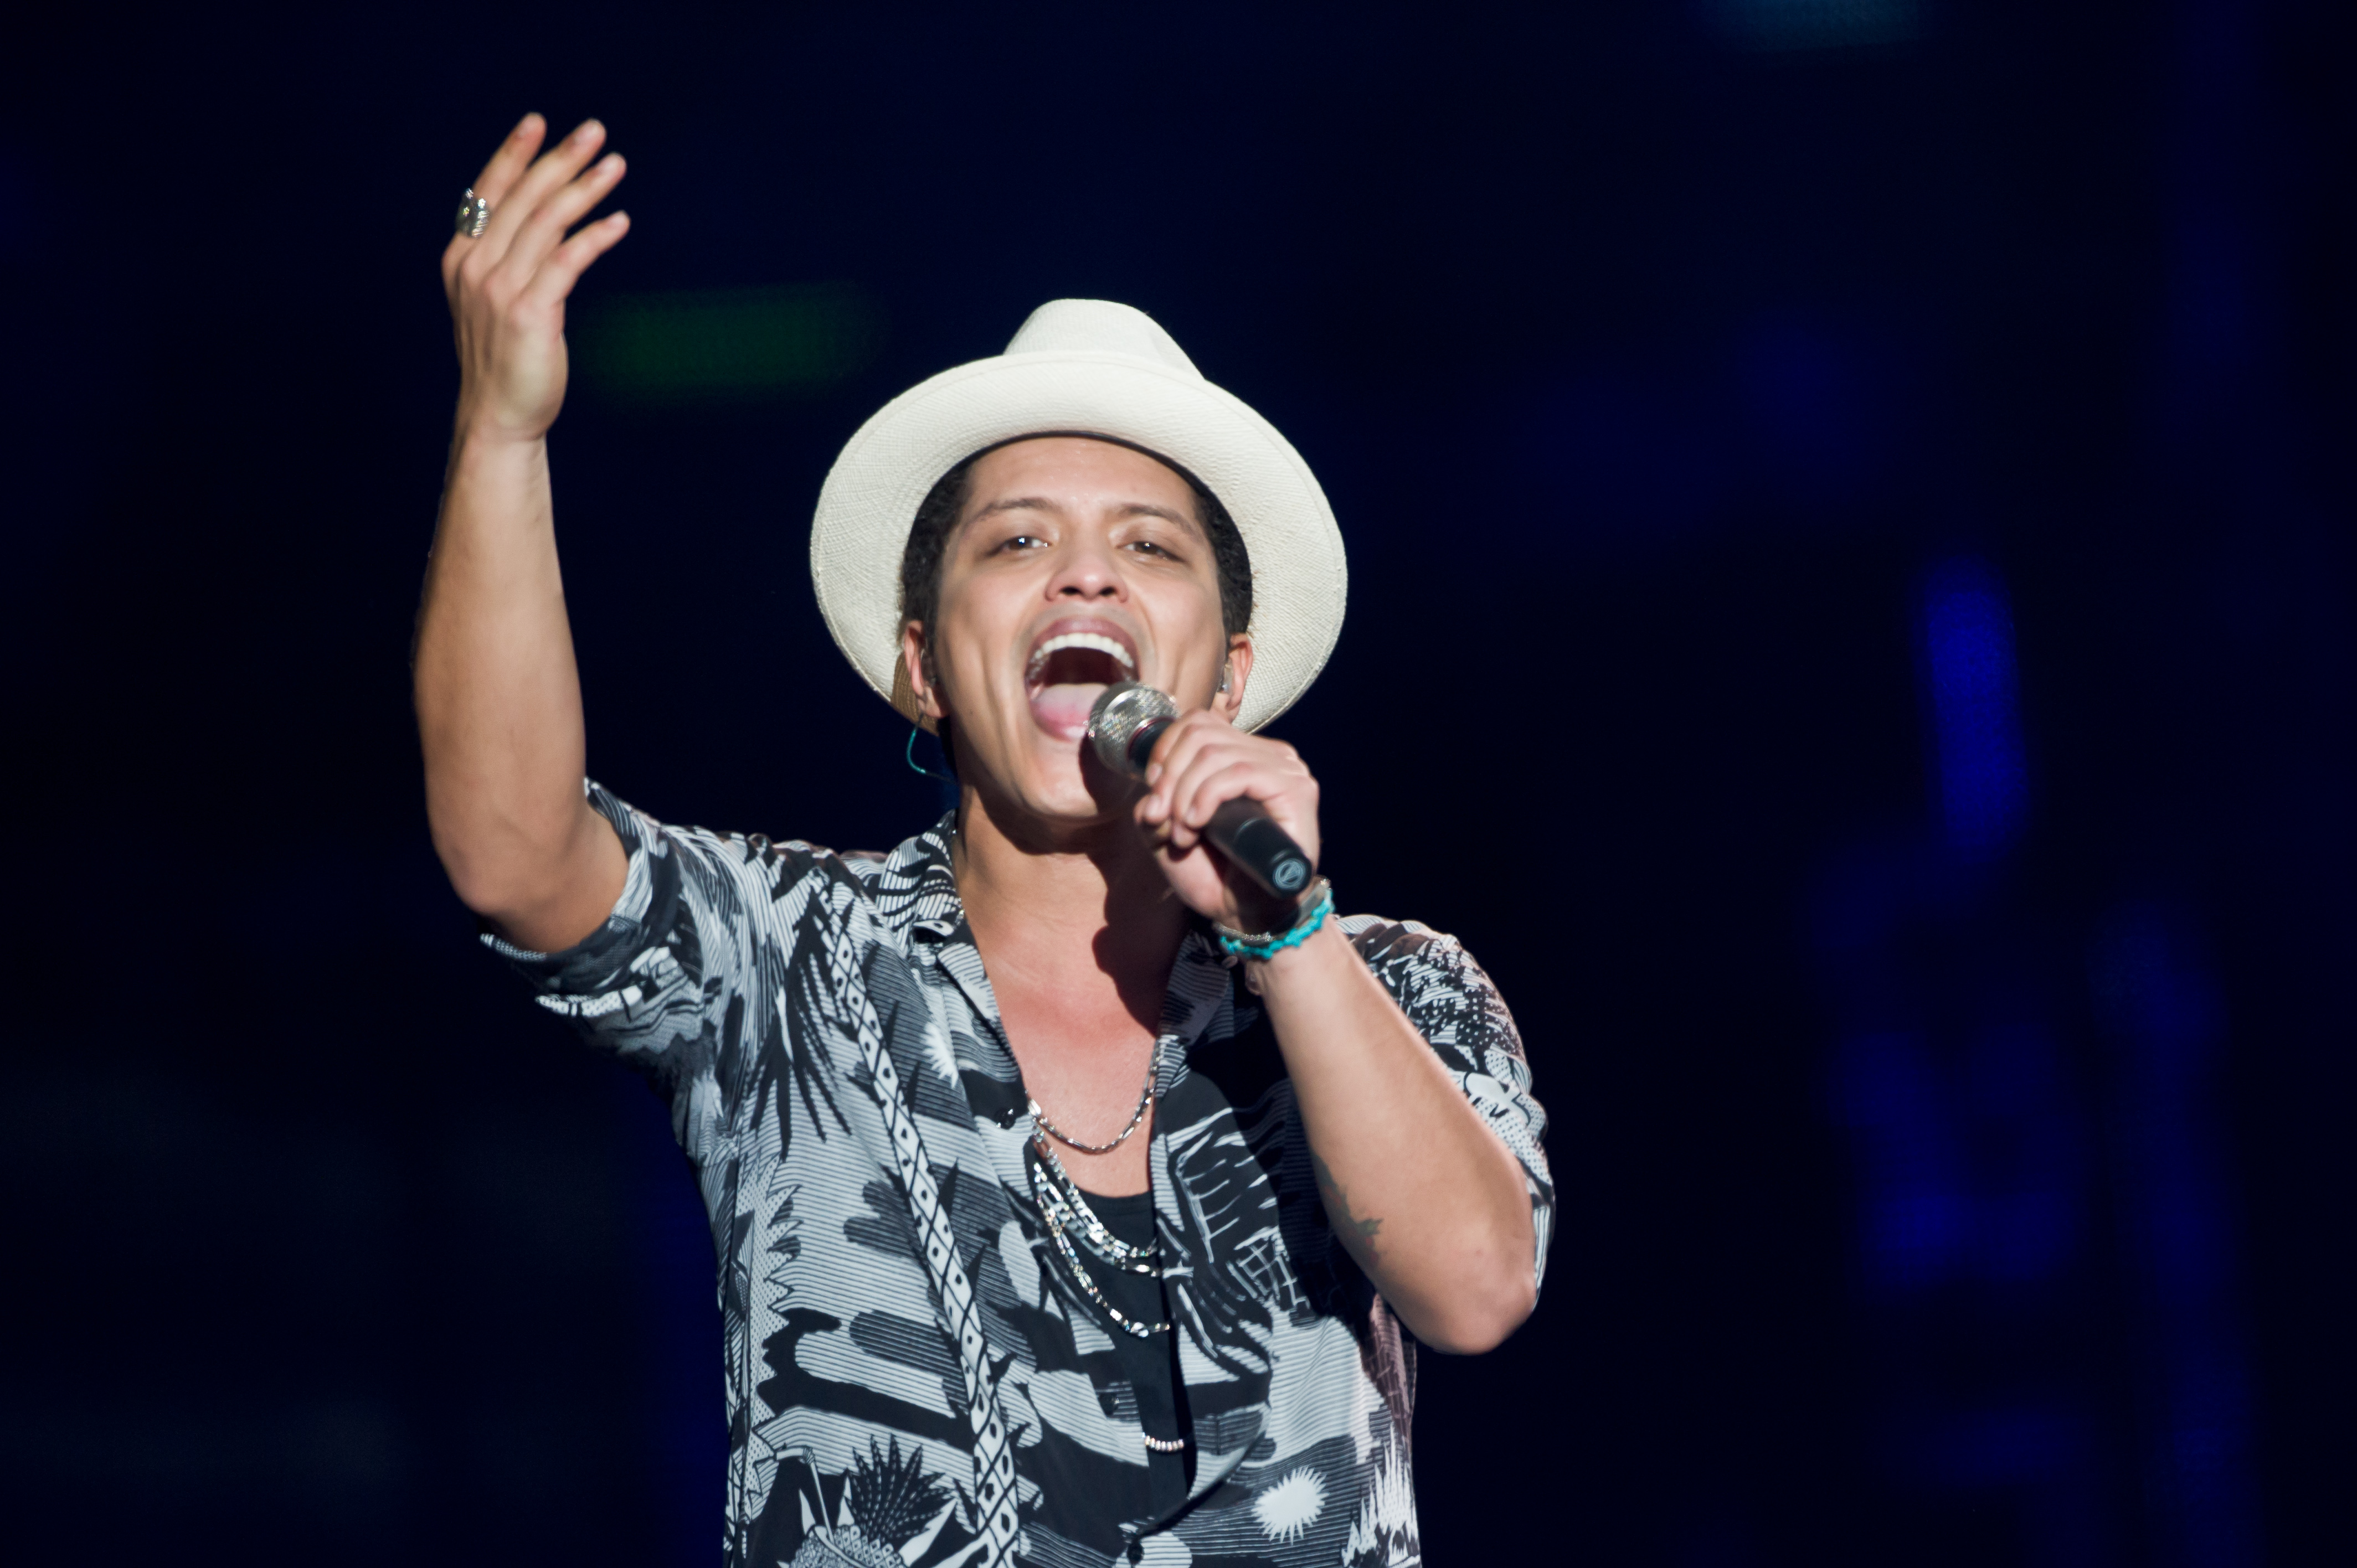 Bruno Mars performs on stage at Wireless Festival at Finsbury Park on July 6, 2014 in London, United Kingdom.